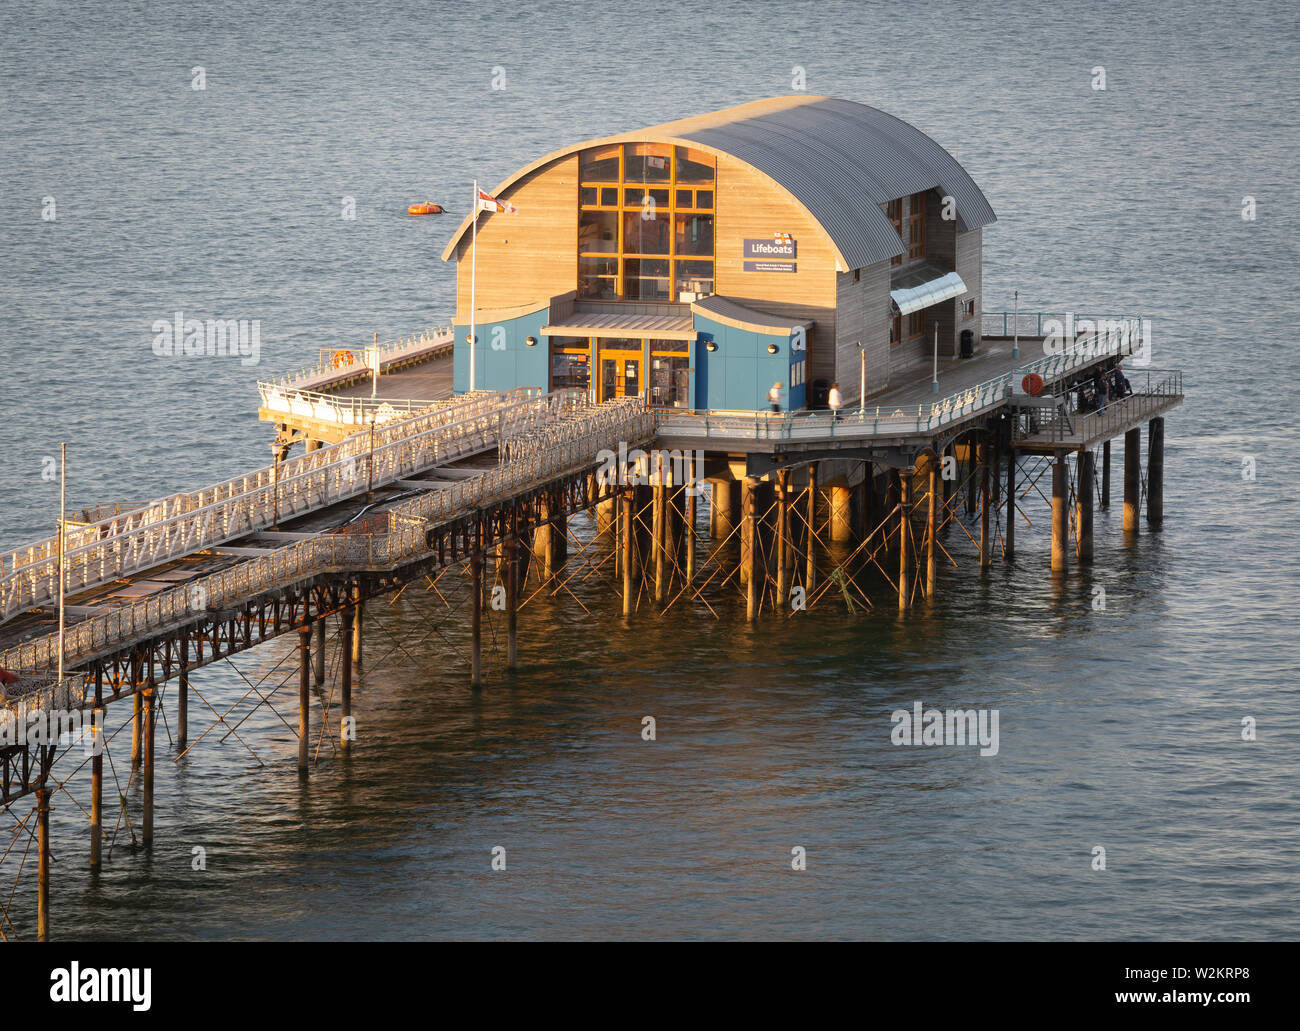 RNLI lifeboat house on Mumbles pier - Stock Image